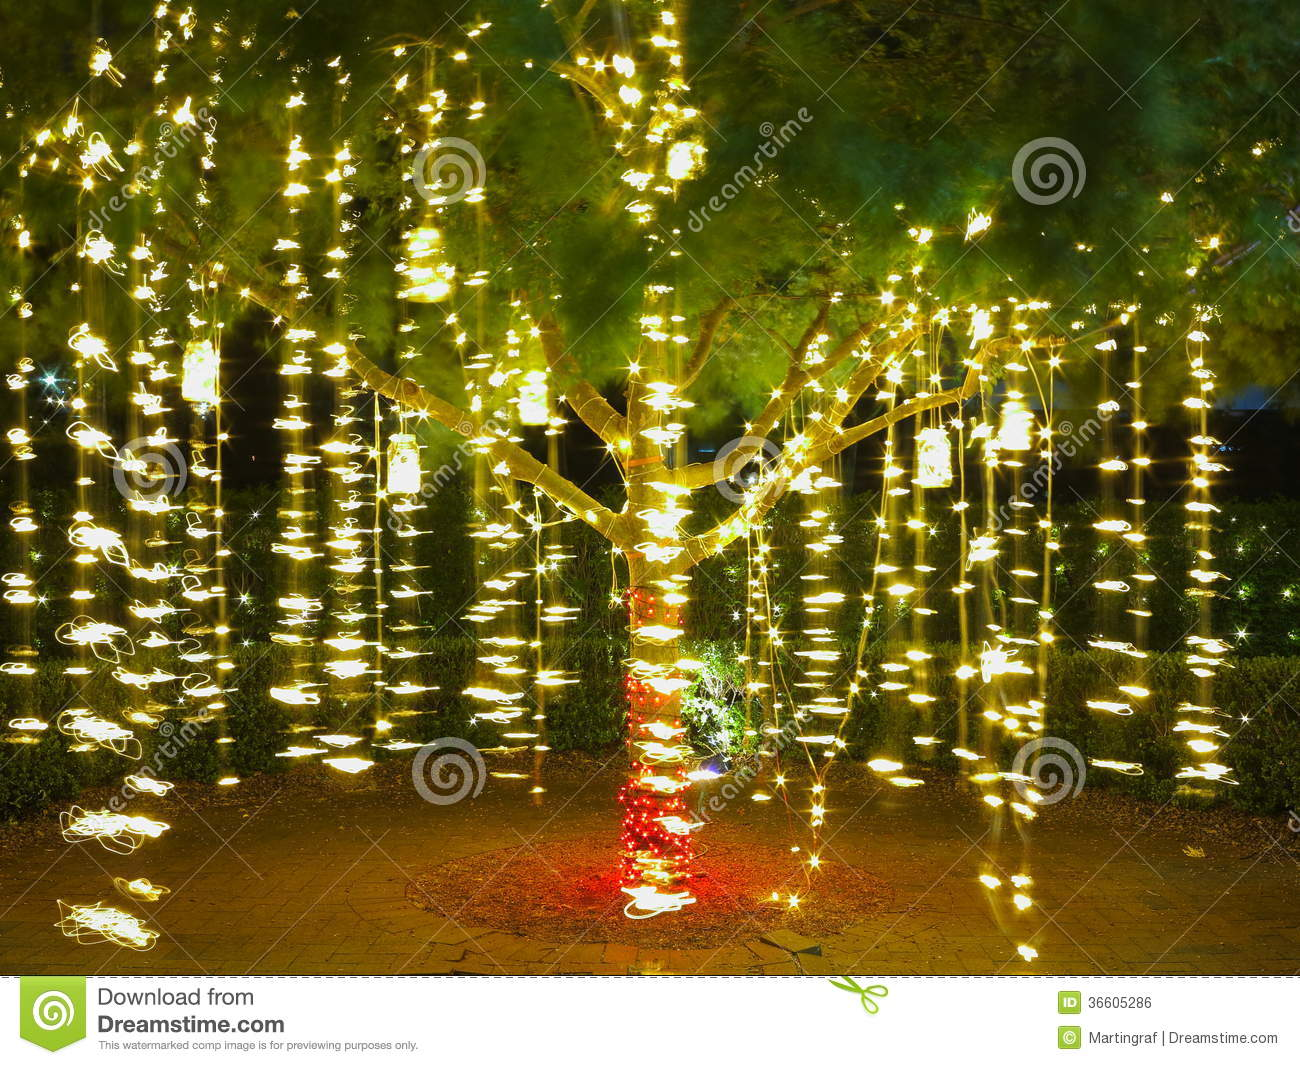 Hanging String Lights Without Trees : Holiday Lights In Tree / Summer Night Royalty Free Stock Image - Image: 36605286